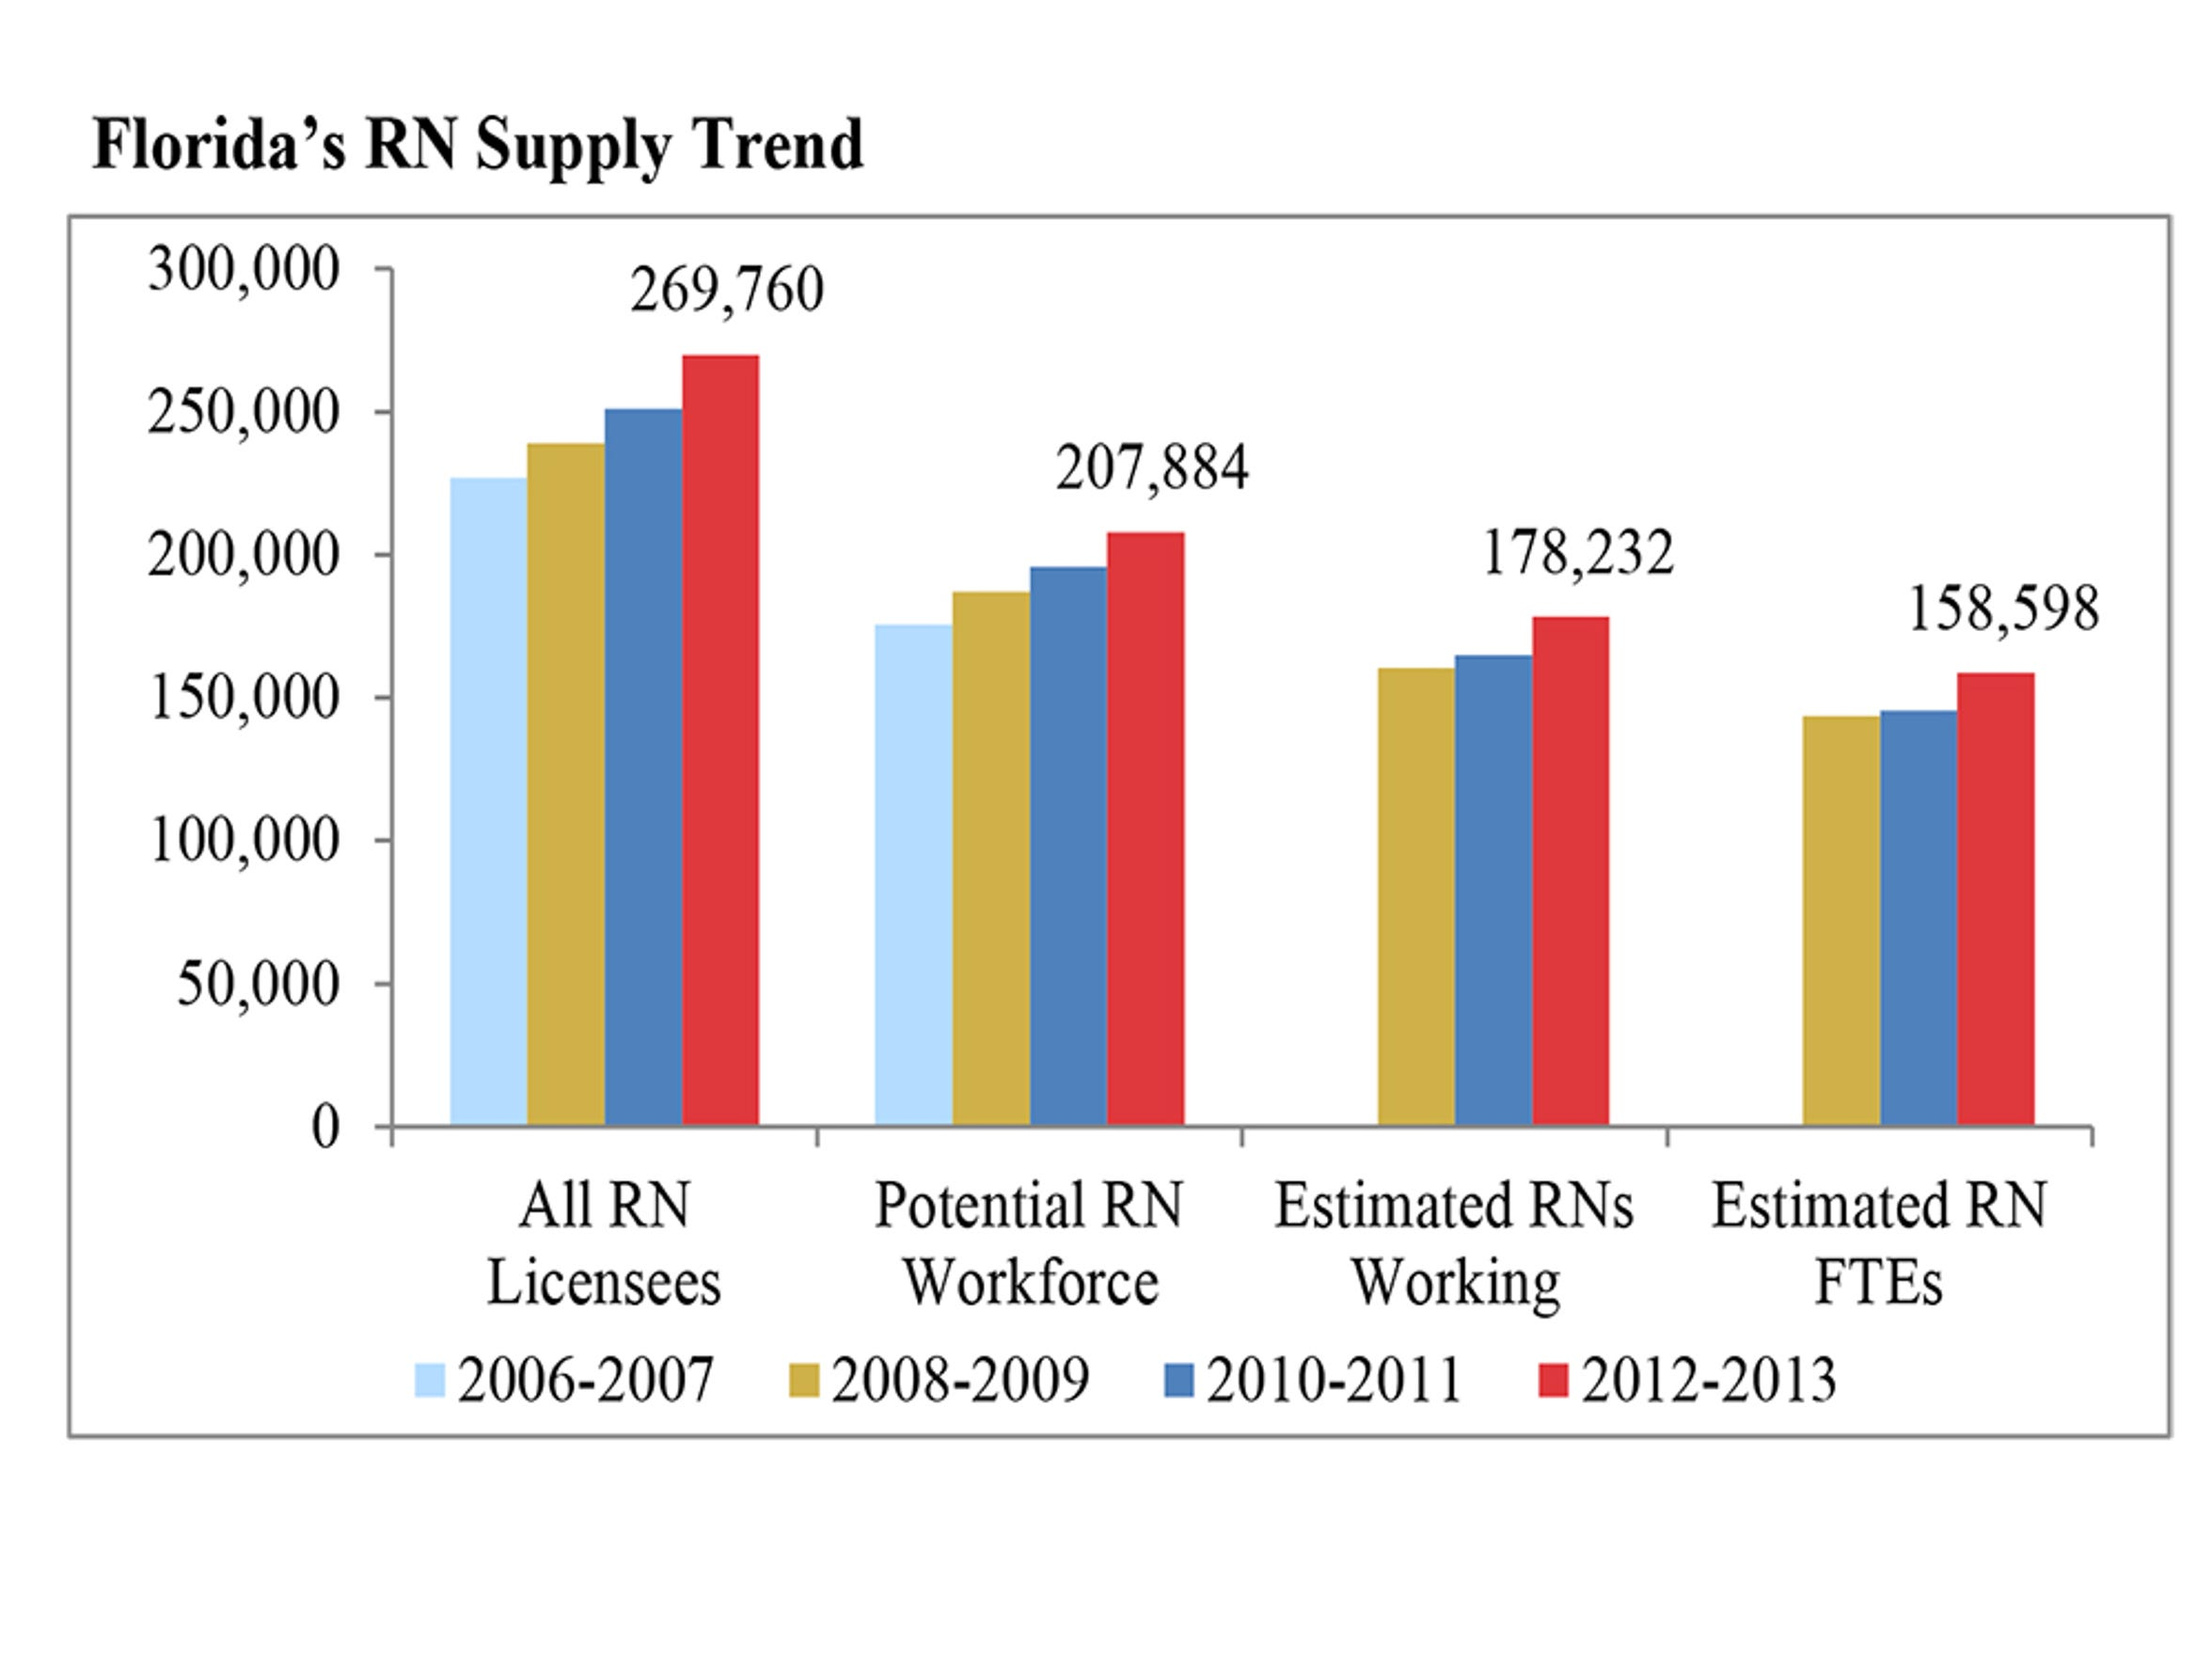 Florida's RN Supply 2012-2013